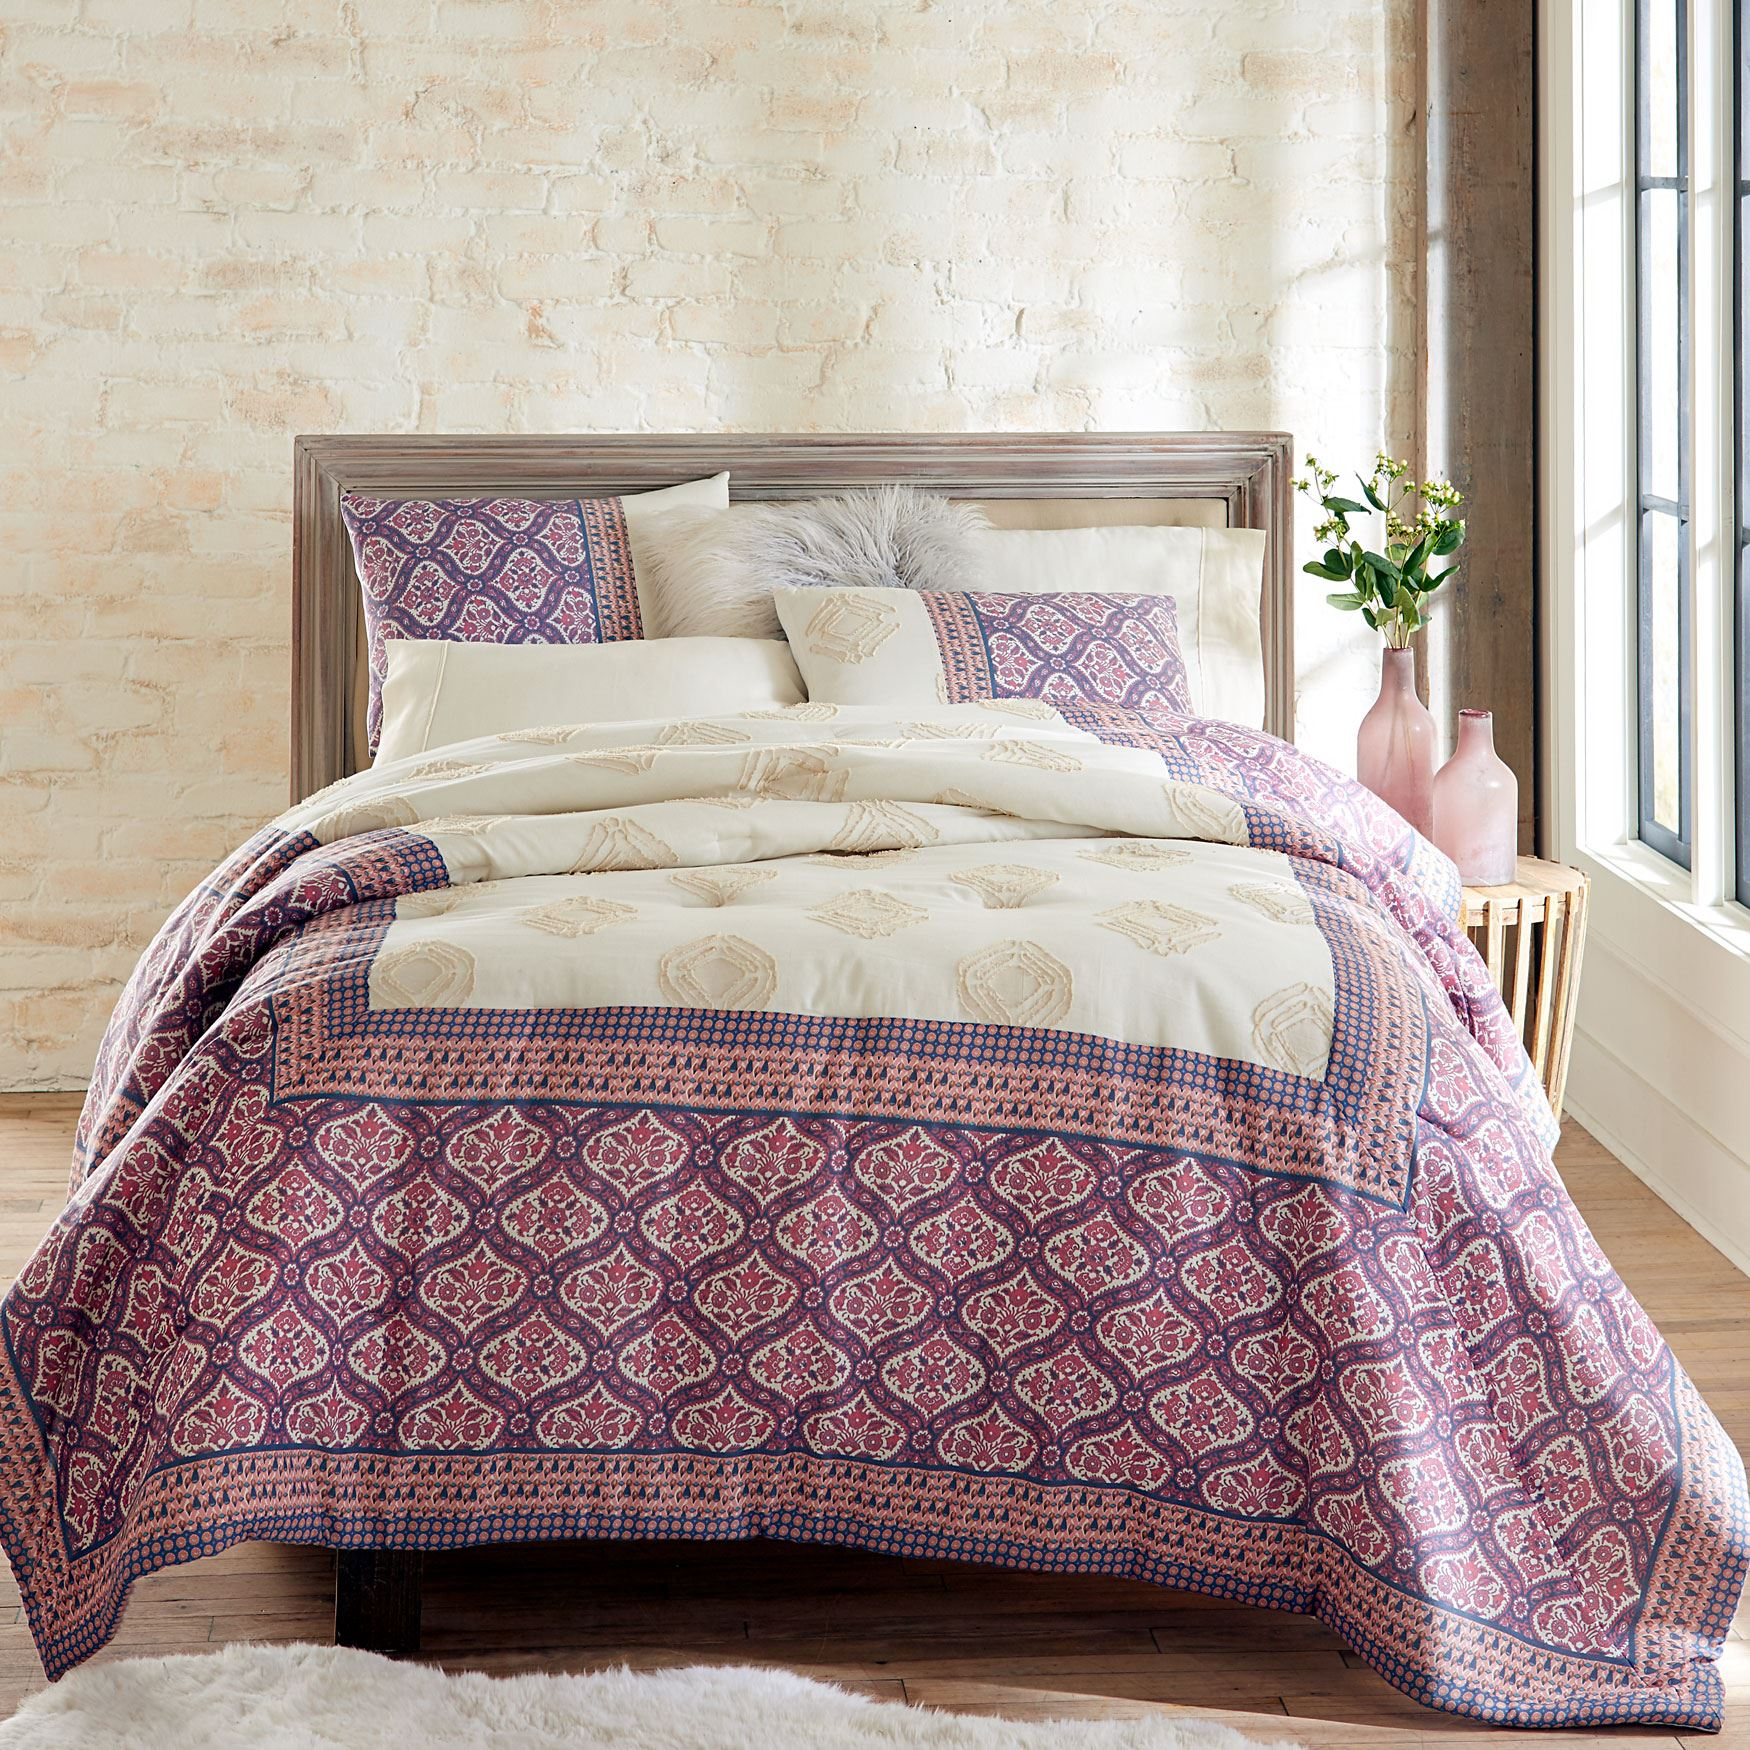 Marrakesh Comforter Collection,